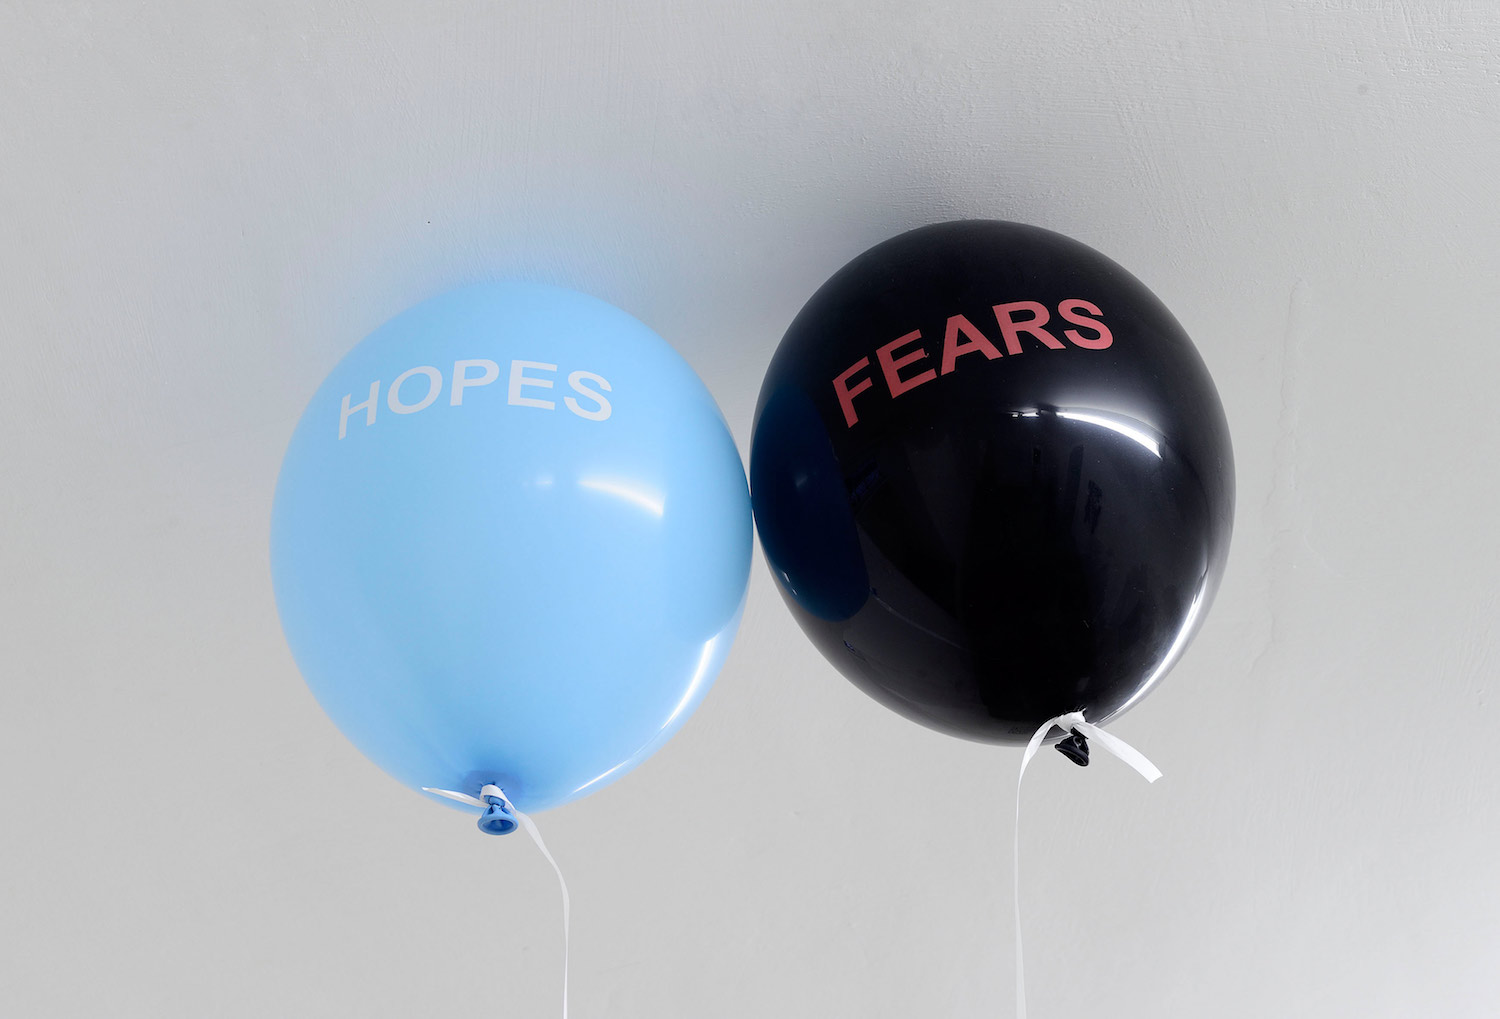 Sam Porritt, Untitled (Hopes and Fears), 2016. Two balloons, helium, keys, thread. Dimensions variable.